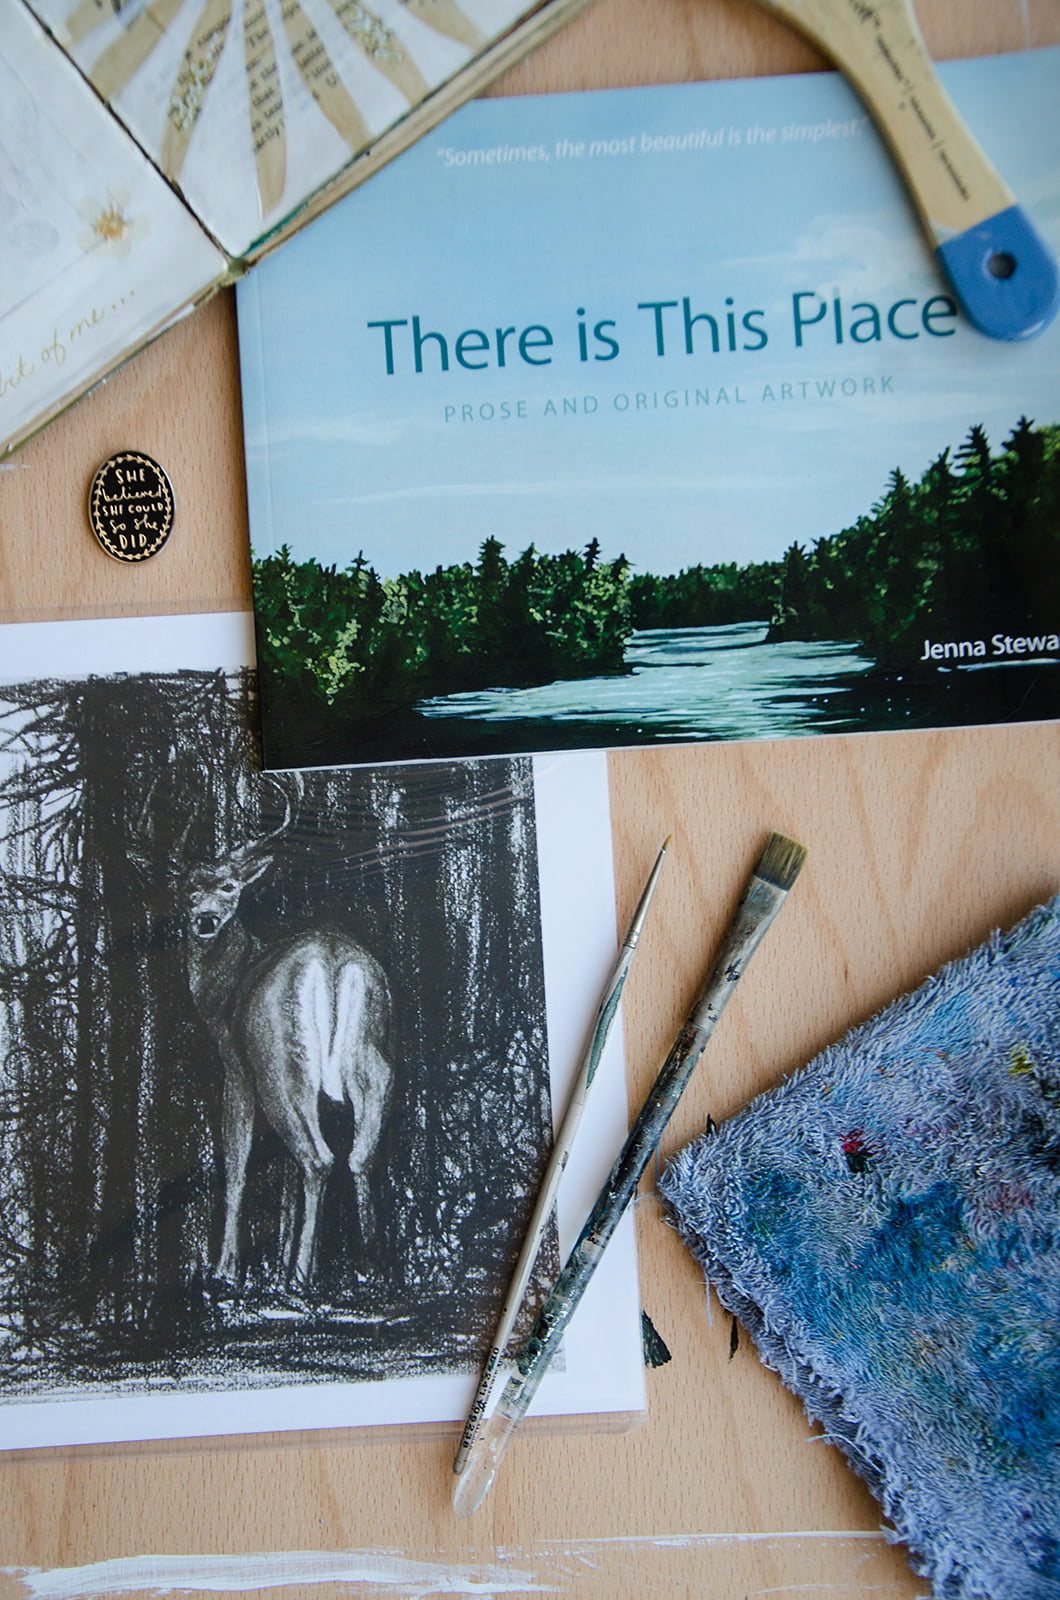 The Social Project Barrie, Barrie Social Project, Barrie Creatives, Social Media Barrie, Barrie Creative Interview, Barrie Business Owner Interview, Barrie Wedding Planner, Muskoka Wedding Planner, Barrie Wedding,